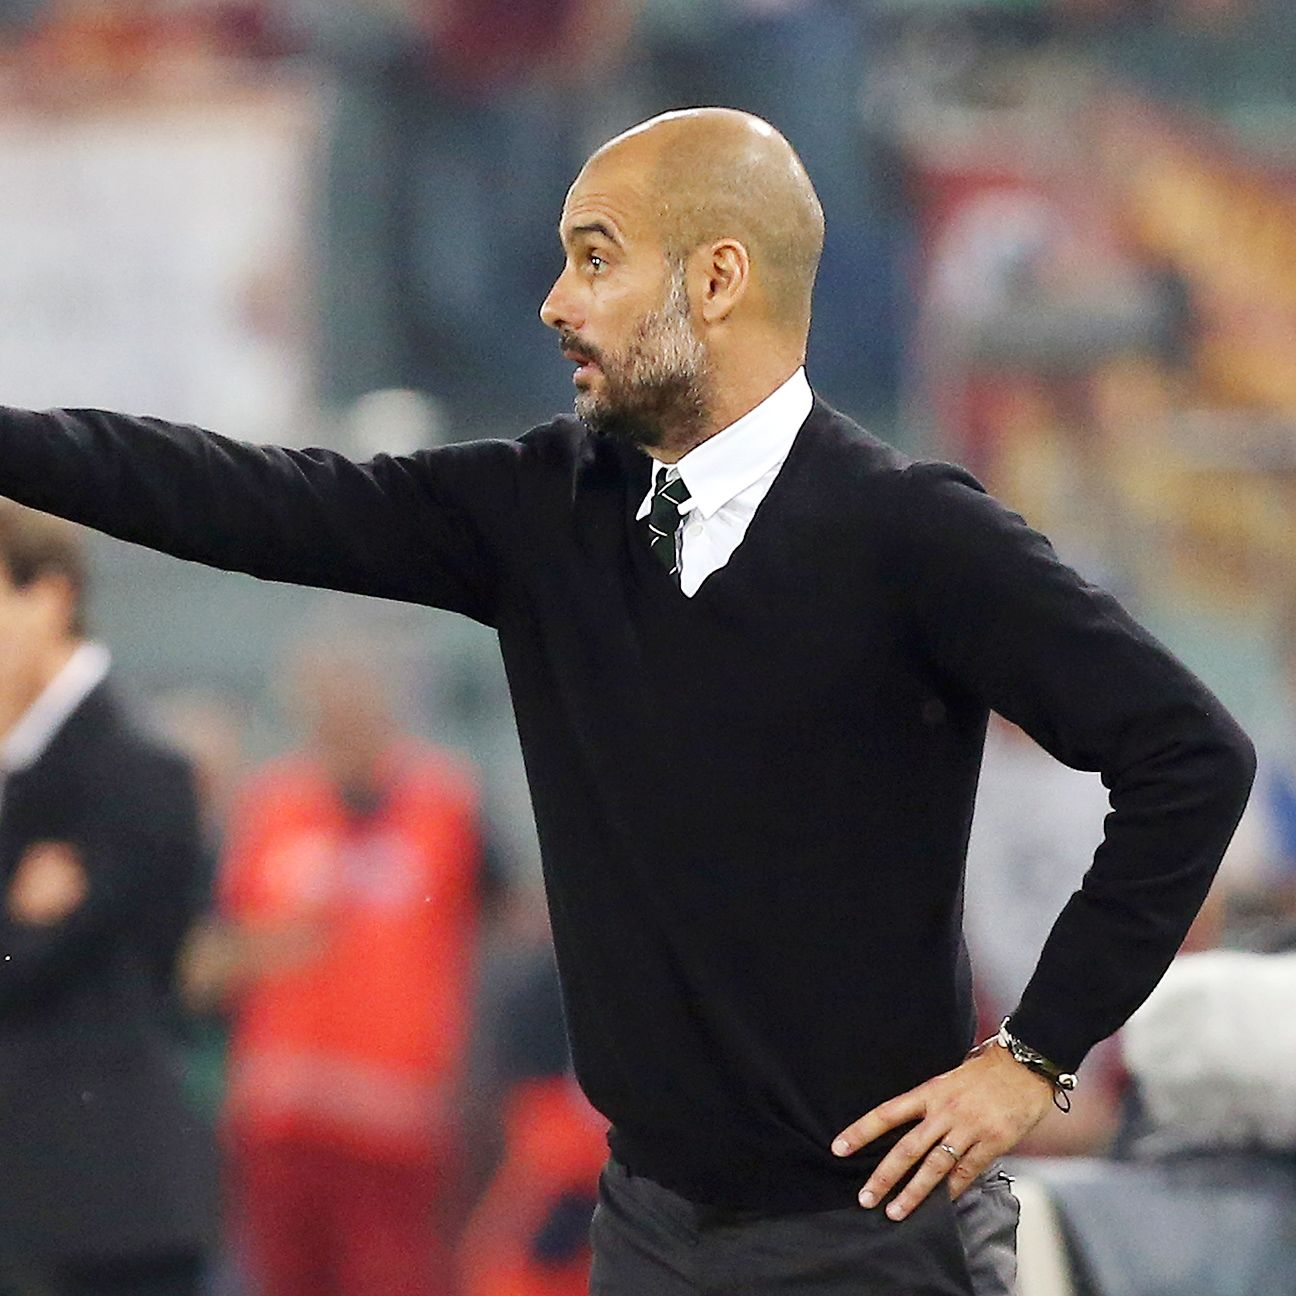 Bayern Munich boss Pep Guardiola will need to make sure his side do not run out of gas come spring.